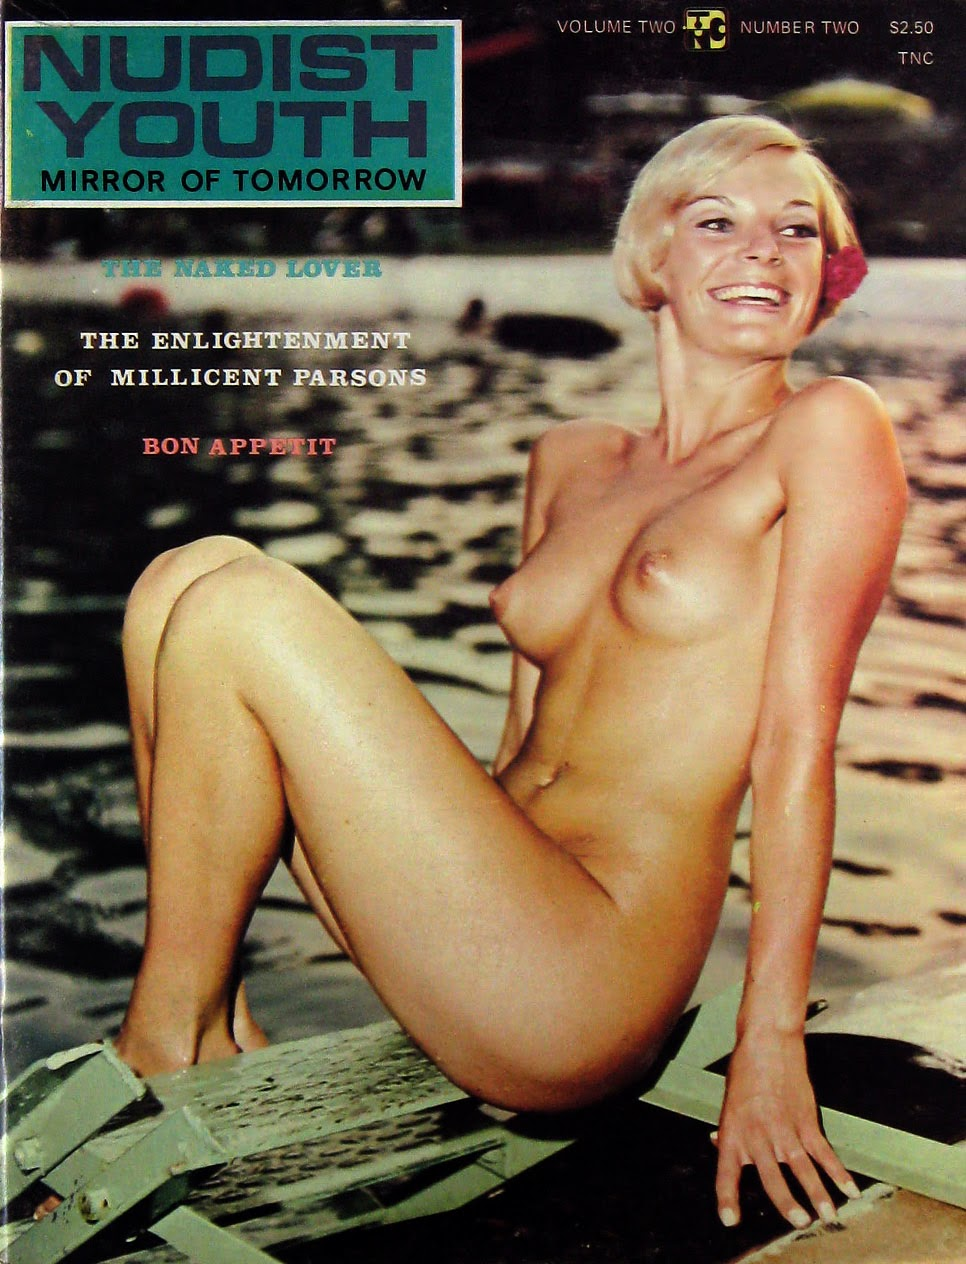 What Nudist sonnenfreunde sonderheft magazine